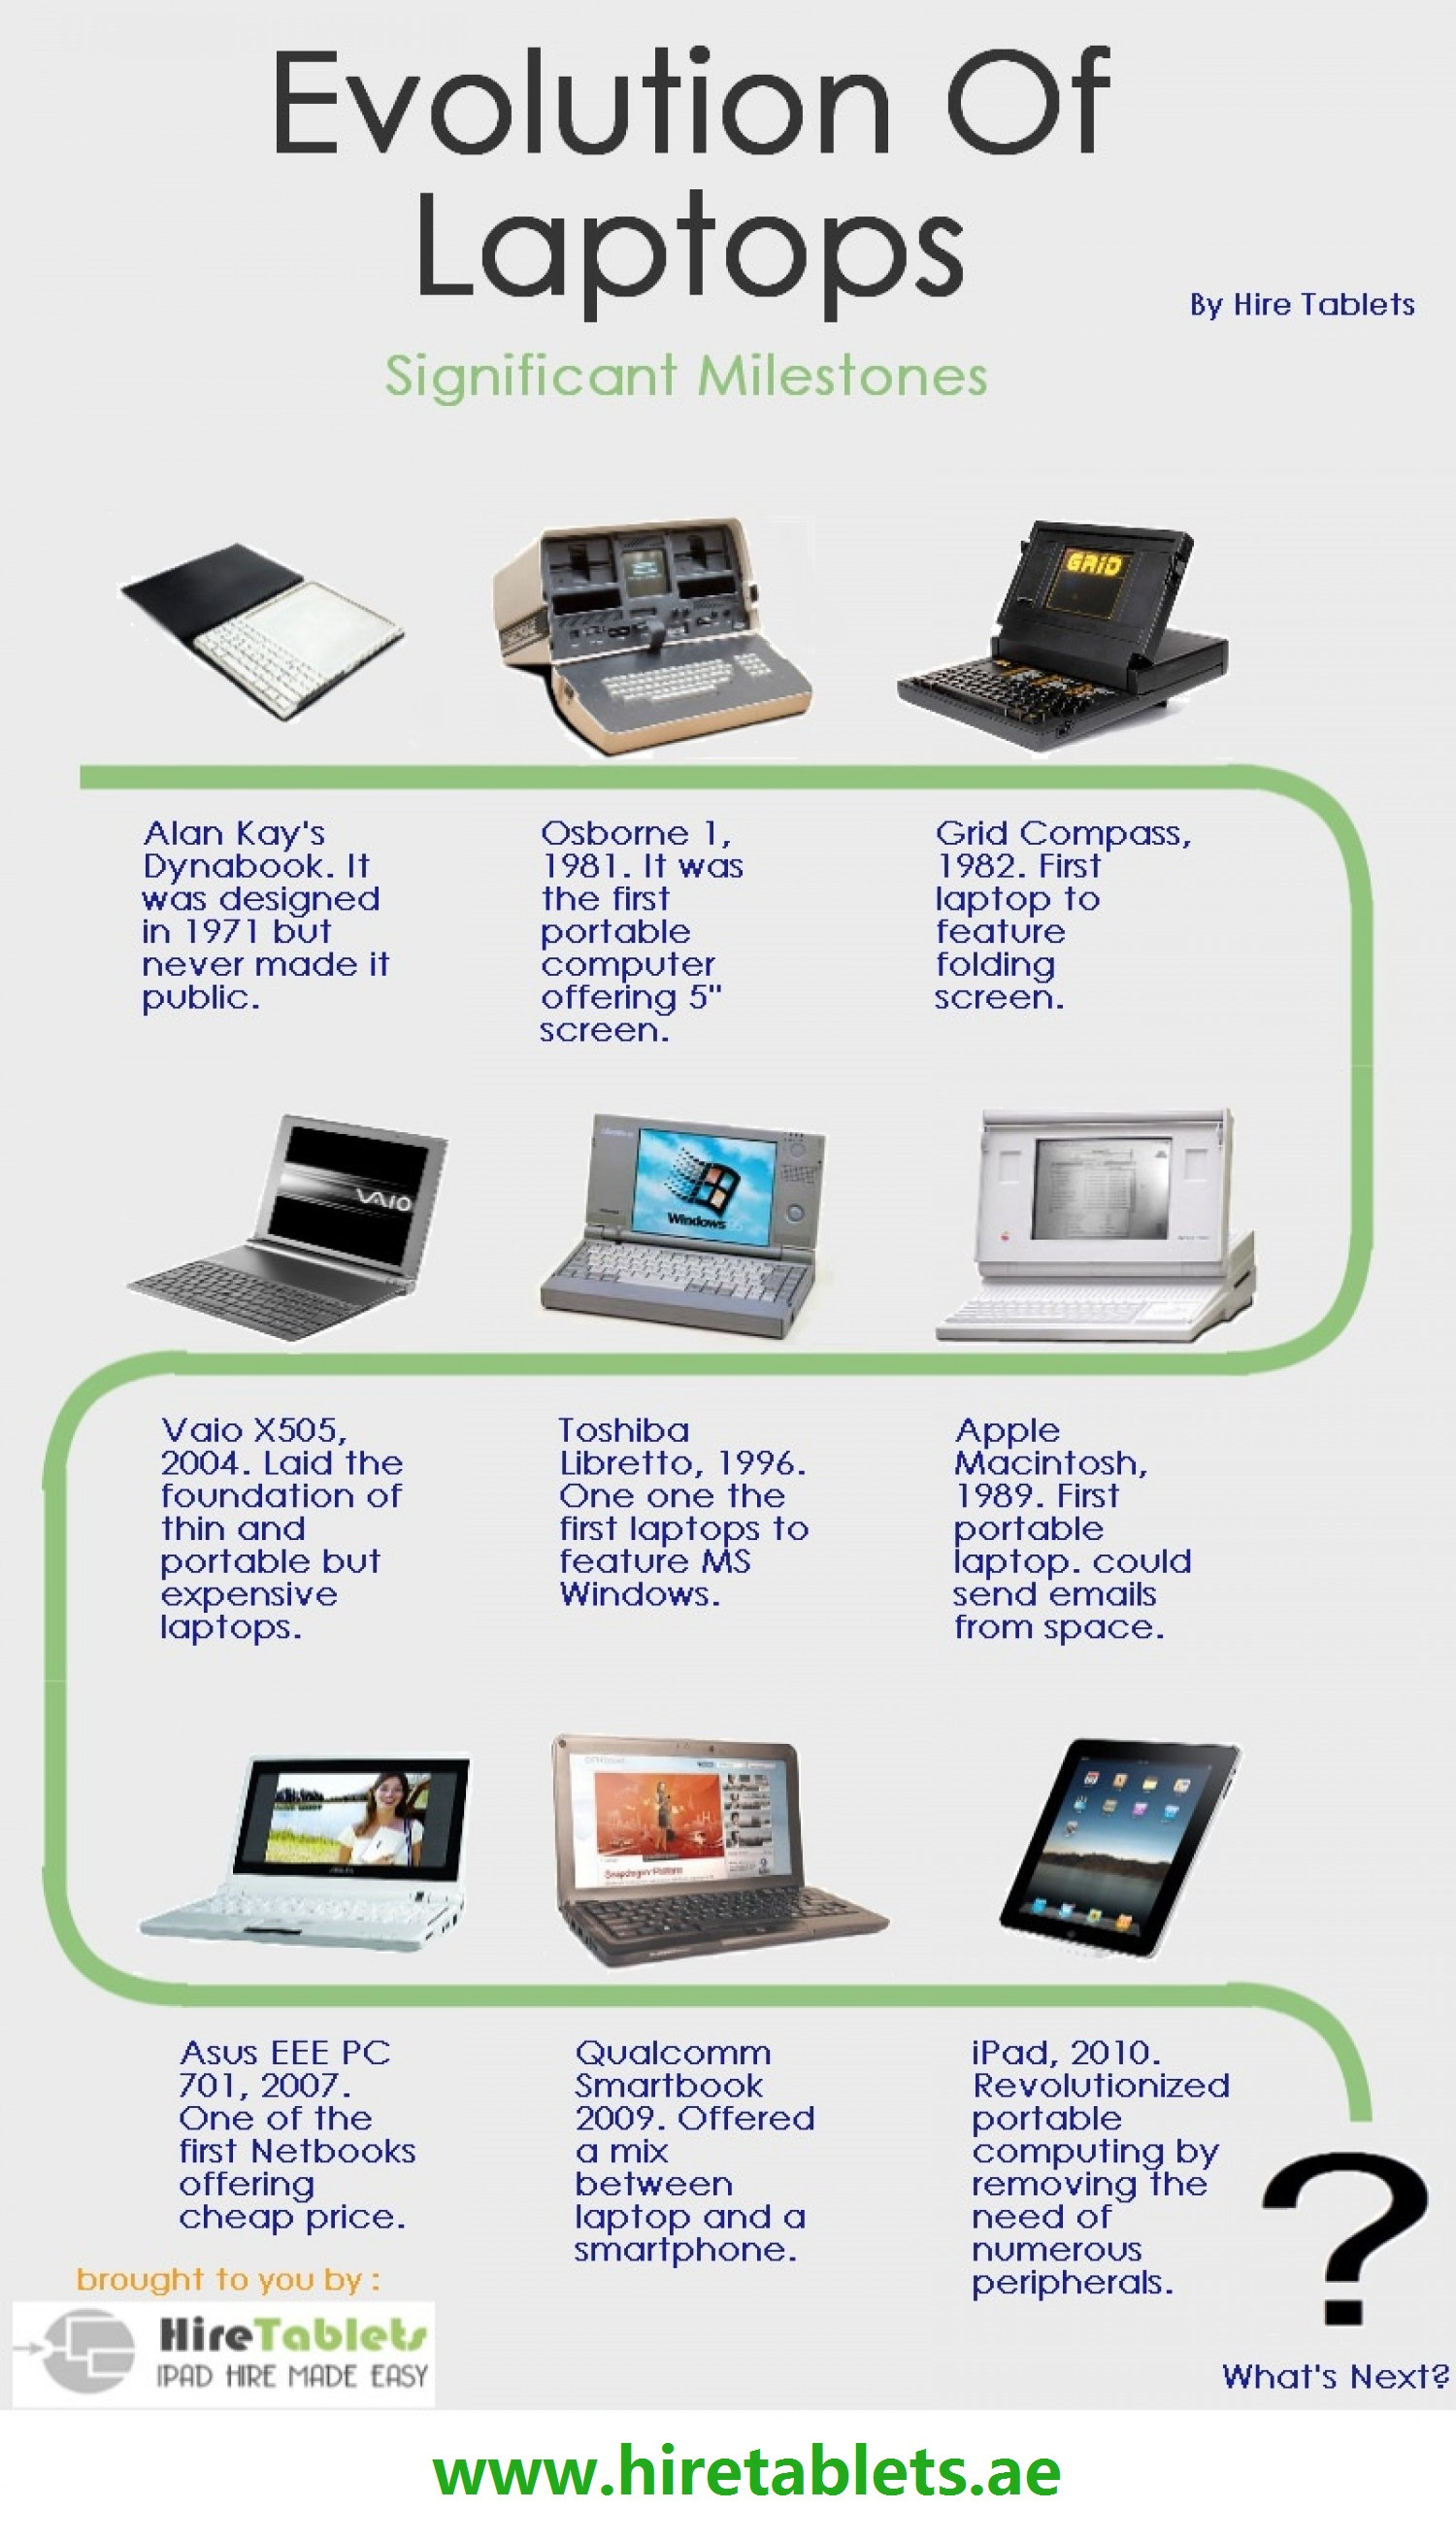 Evolution of Laptops by Hire Tablets Infographic